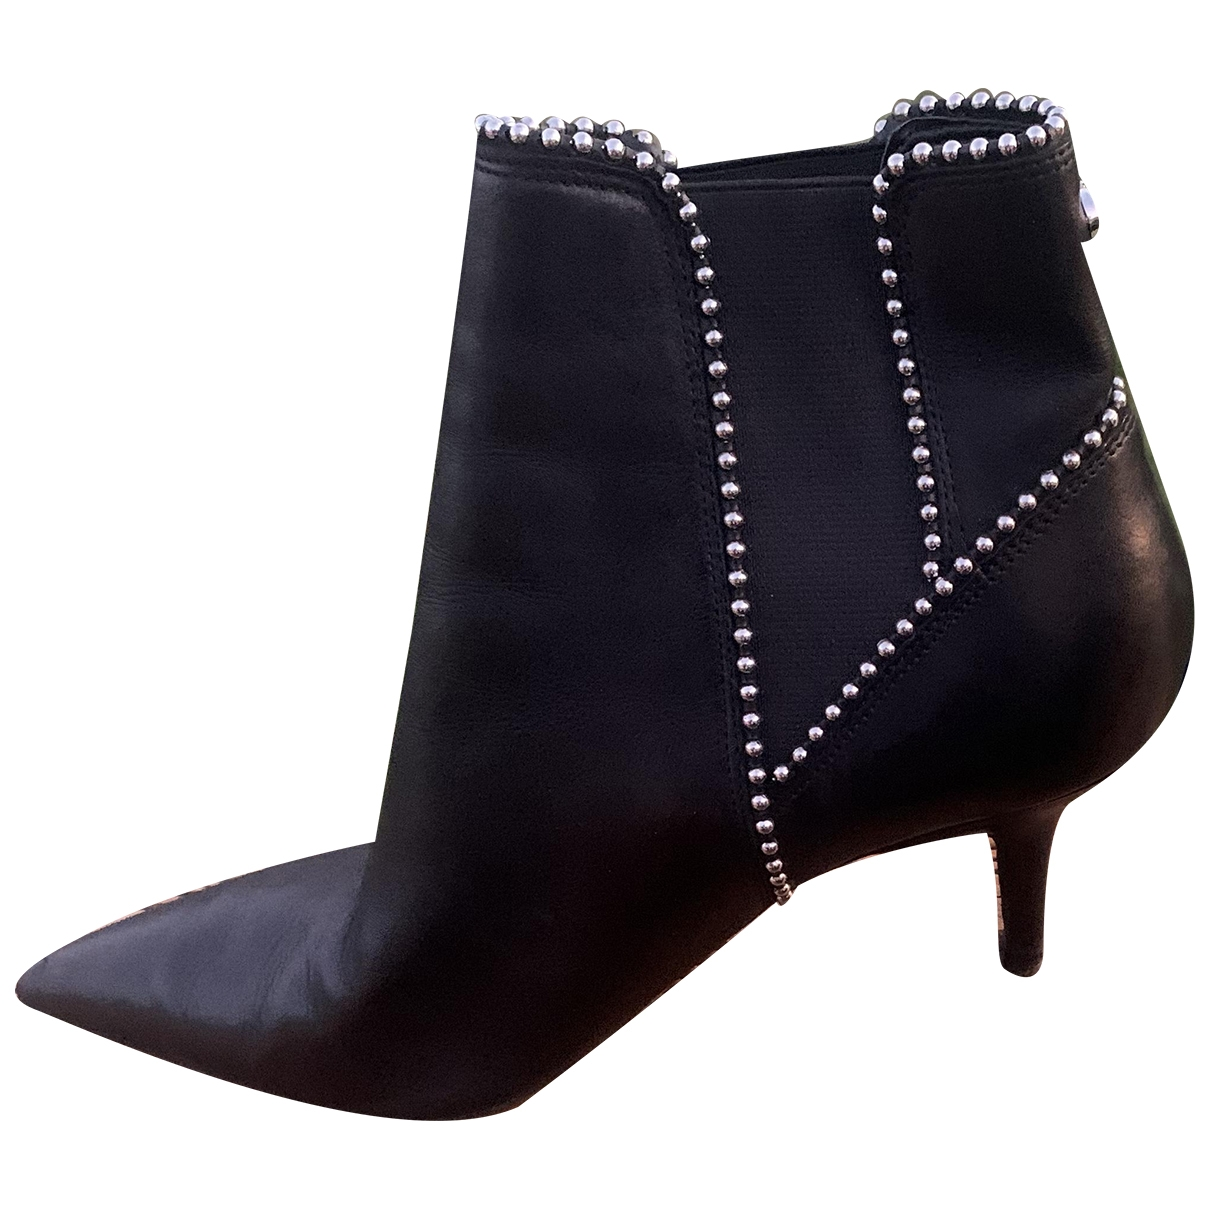 Guess \N Black Leather Boots for Women 40 EU